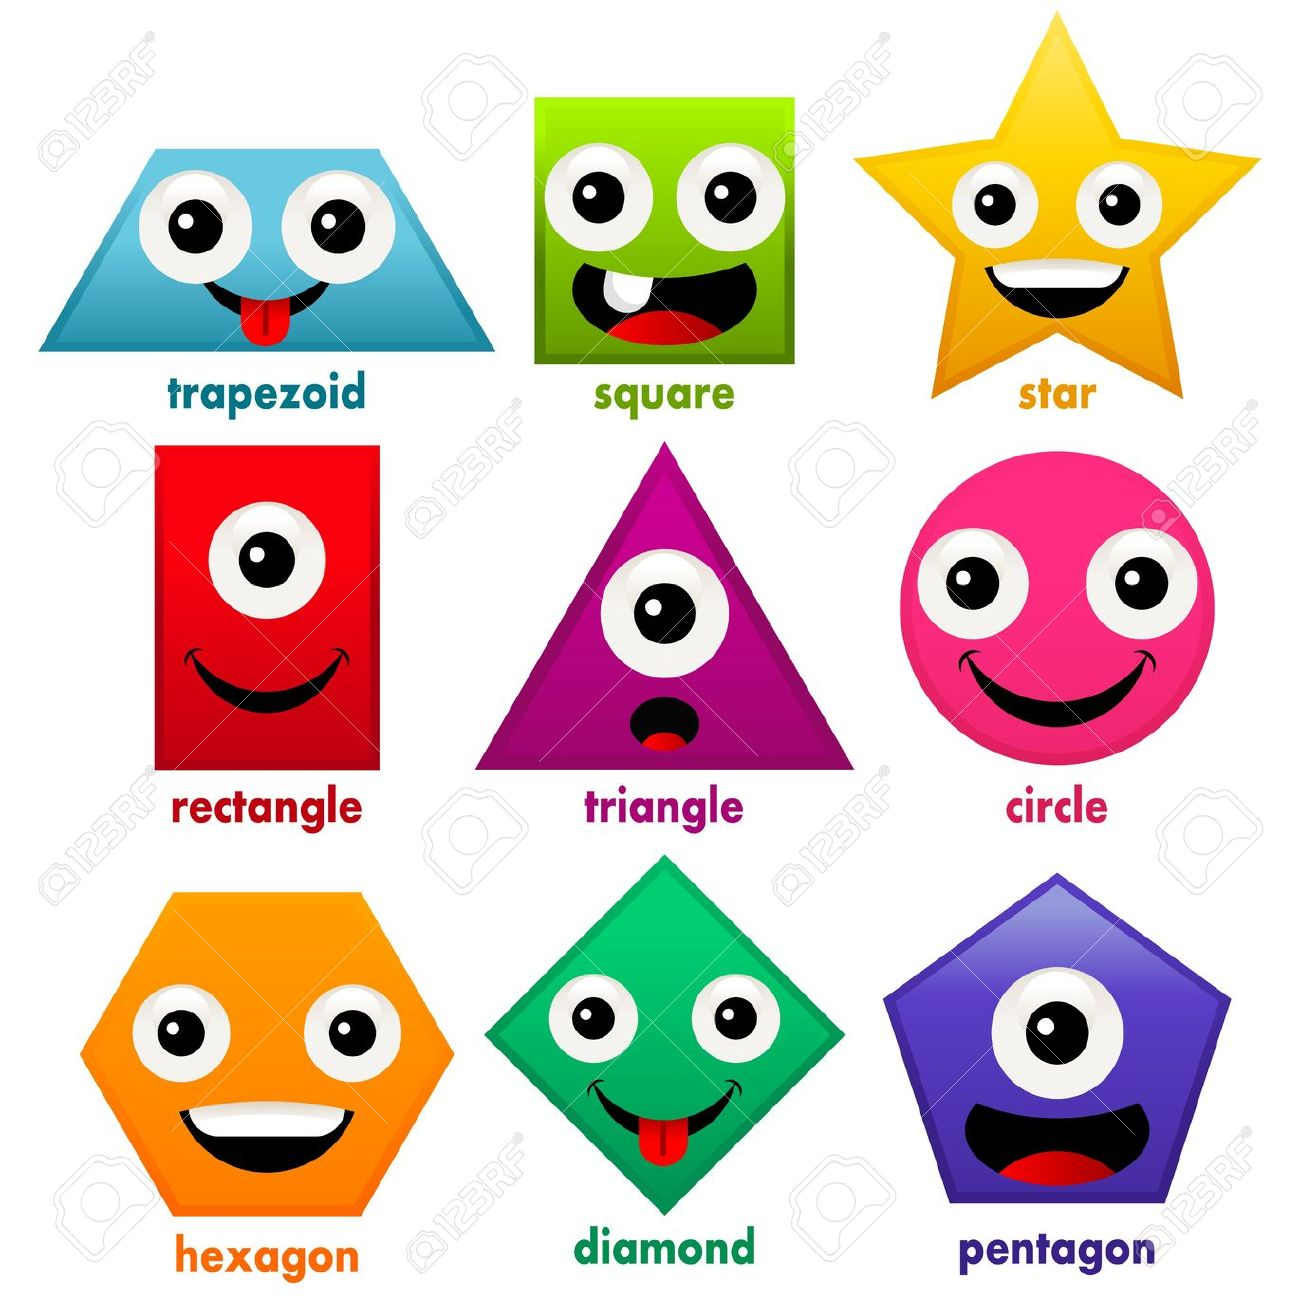 Clipart Smily Rectangle 20 Free Cliparts